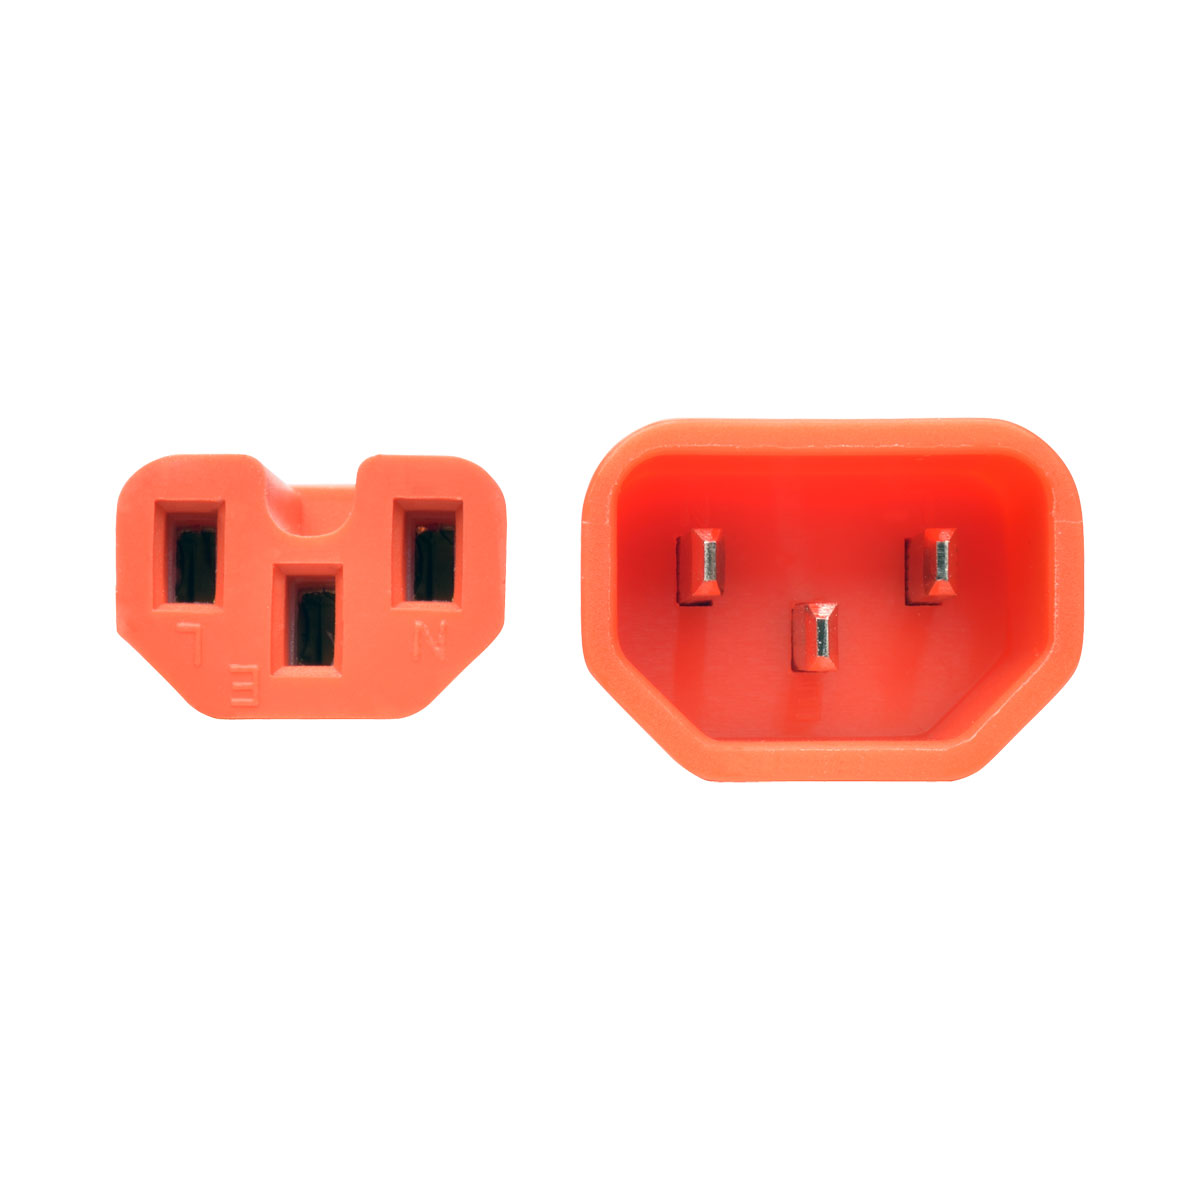 Tripp Lite Heavy Duty Computer Power Cord 15A 14AWG C14 to C15 Orange 3'